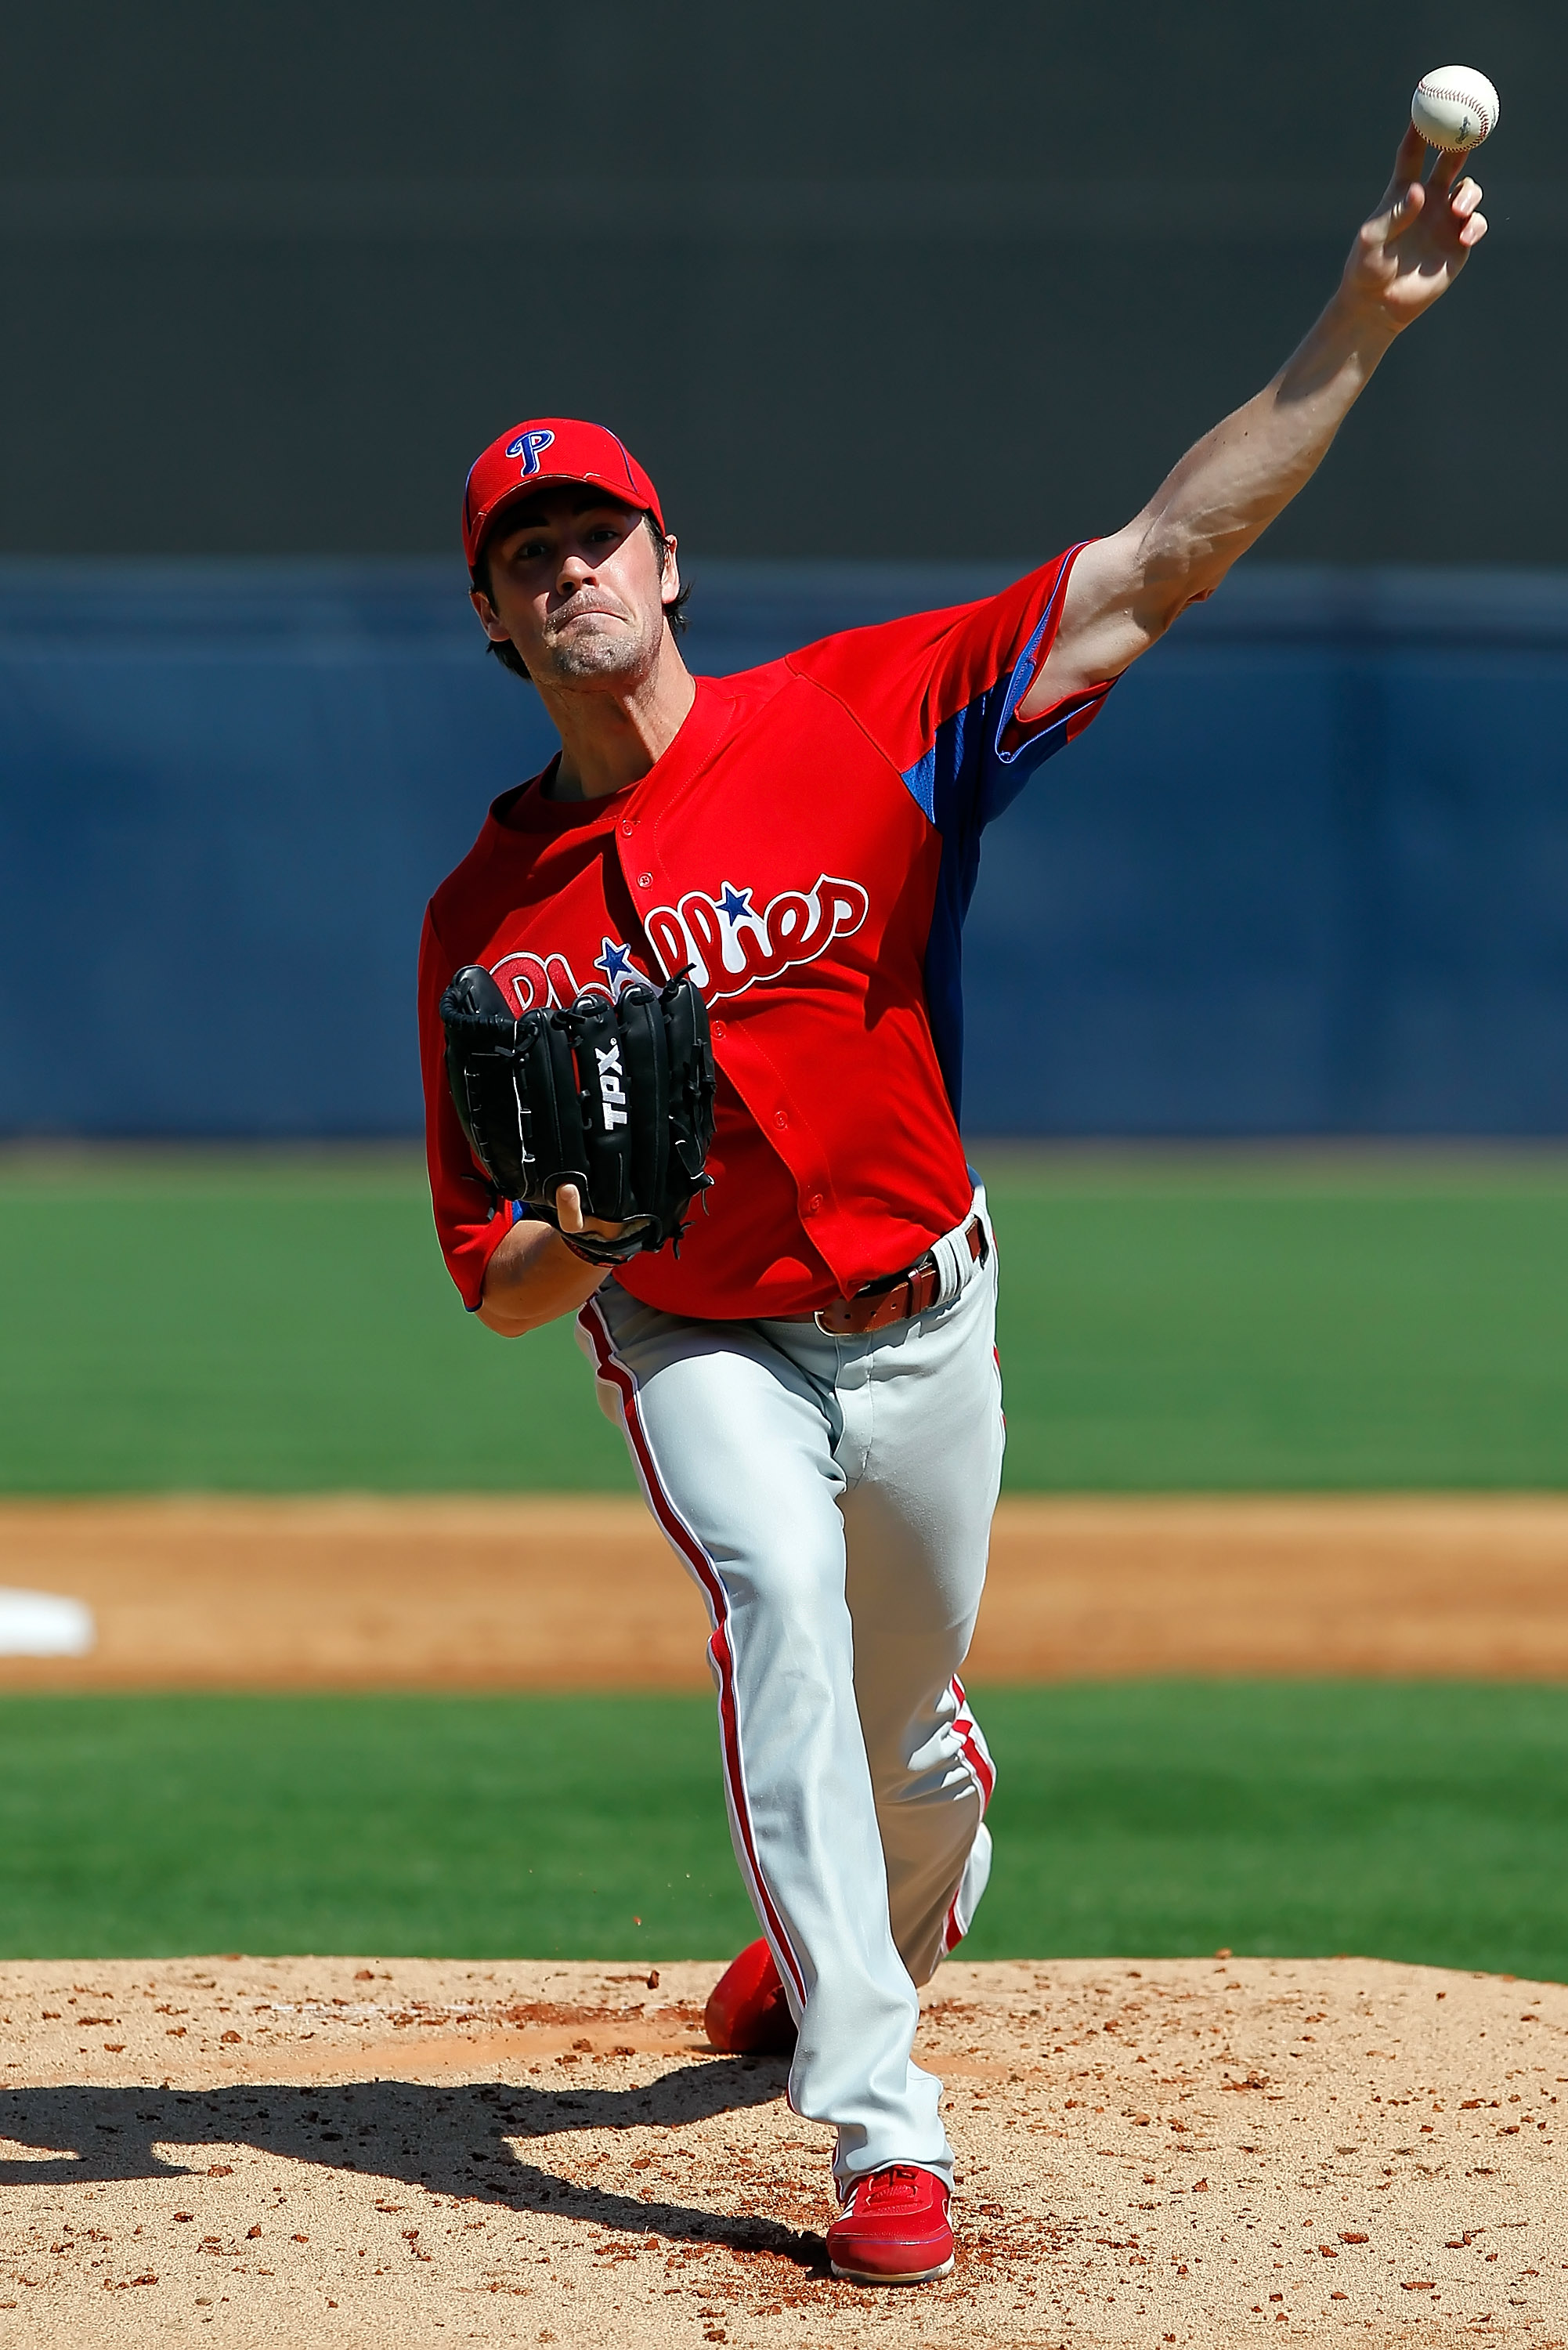 TAMPA, FL - FEBRUARY 26:  Pitcher Cole Hamels #35 of the Philadelphia Phillies pitches against the New York Yankees during a Grapefruit League Spring Training Game at George M. Steinbrenner Field on February 26, 2011 in Tampa, Florida.  (Photo by J. Meric